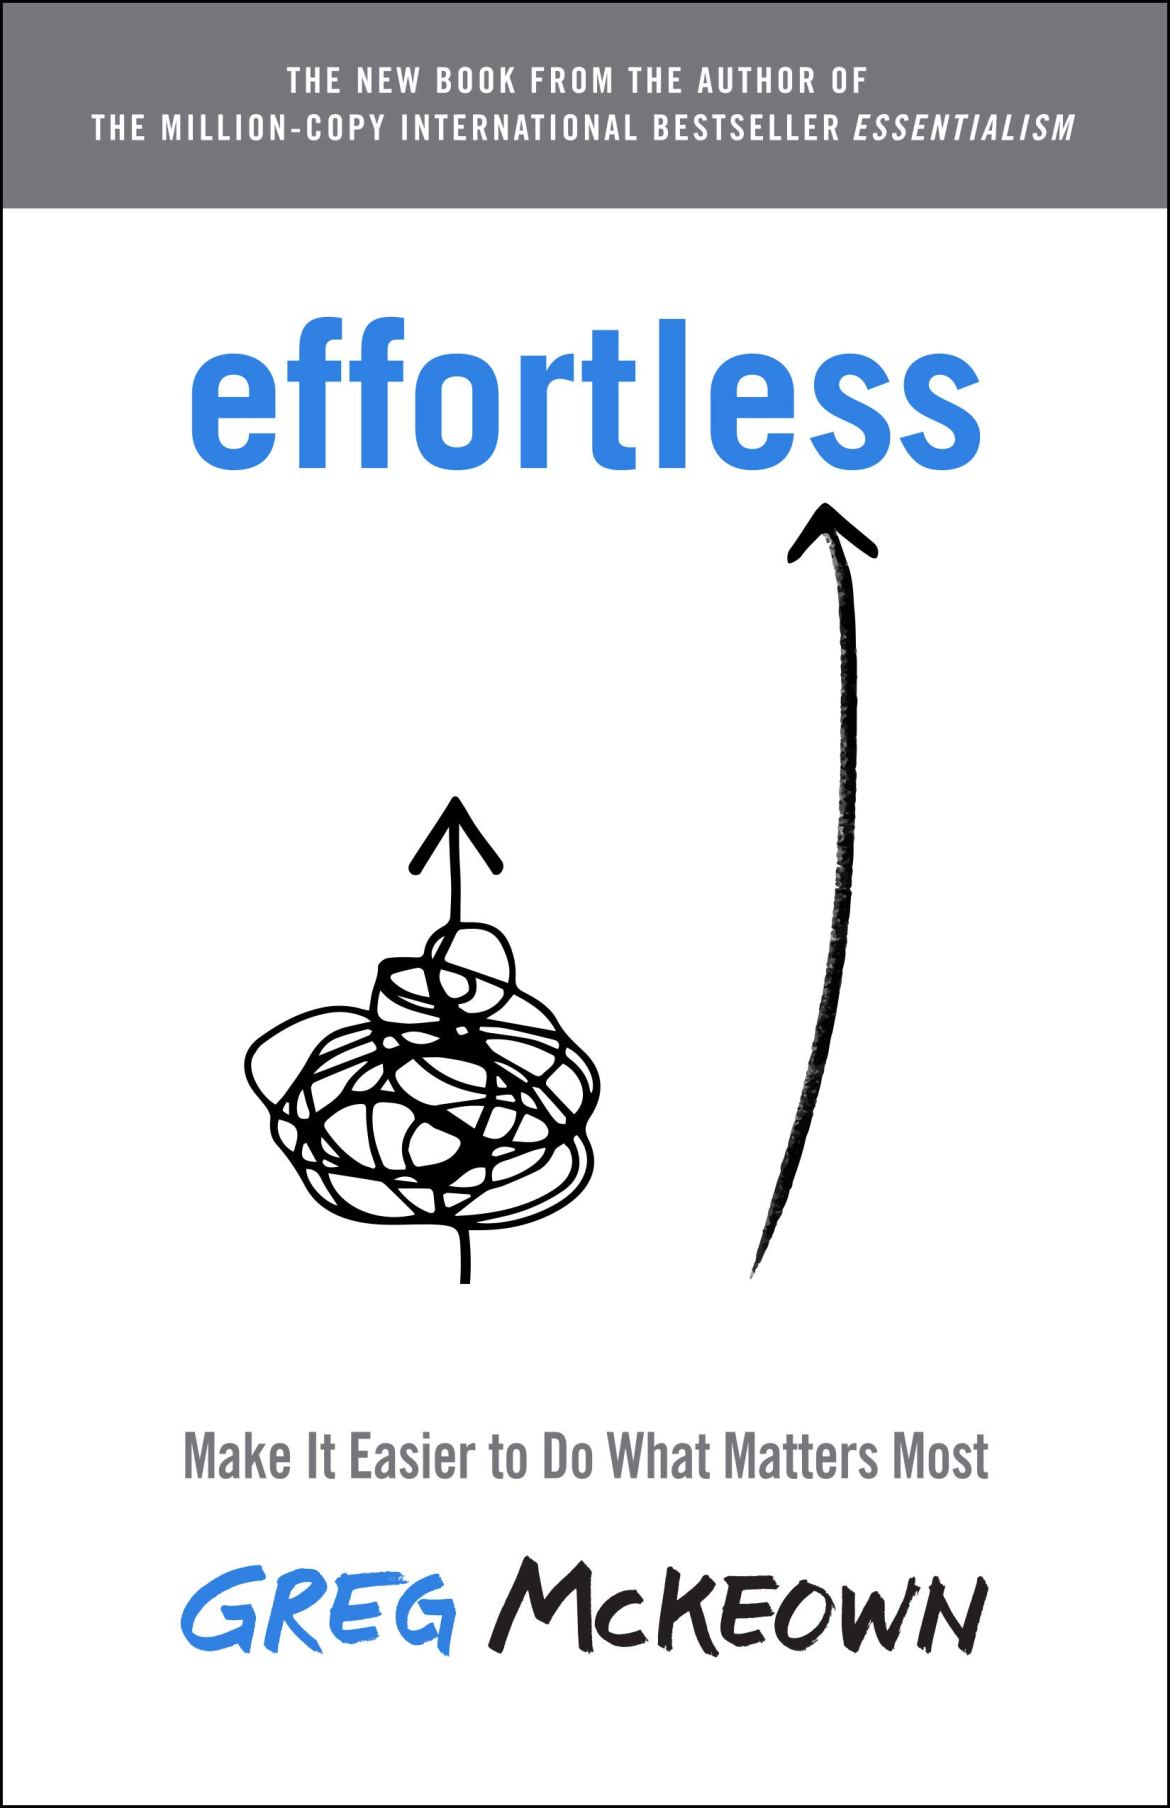 Effortless: Make It Easier to Do What Matters Most: McKeown, Greg:  9780593135648: Amazon.com: Books